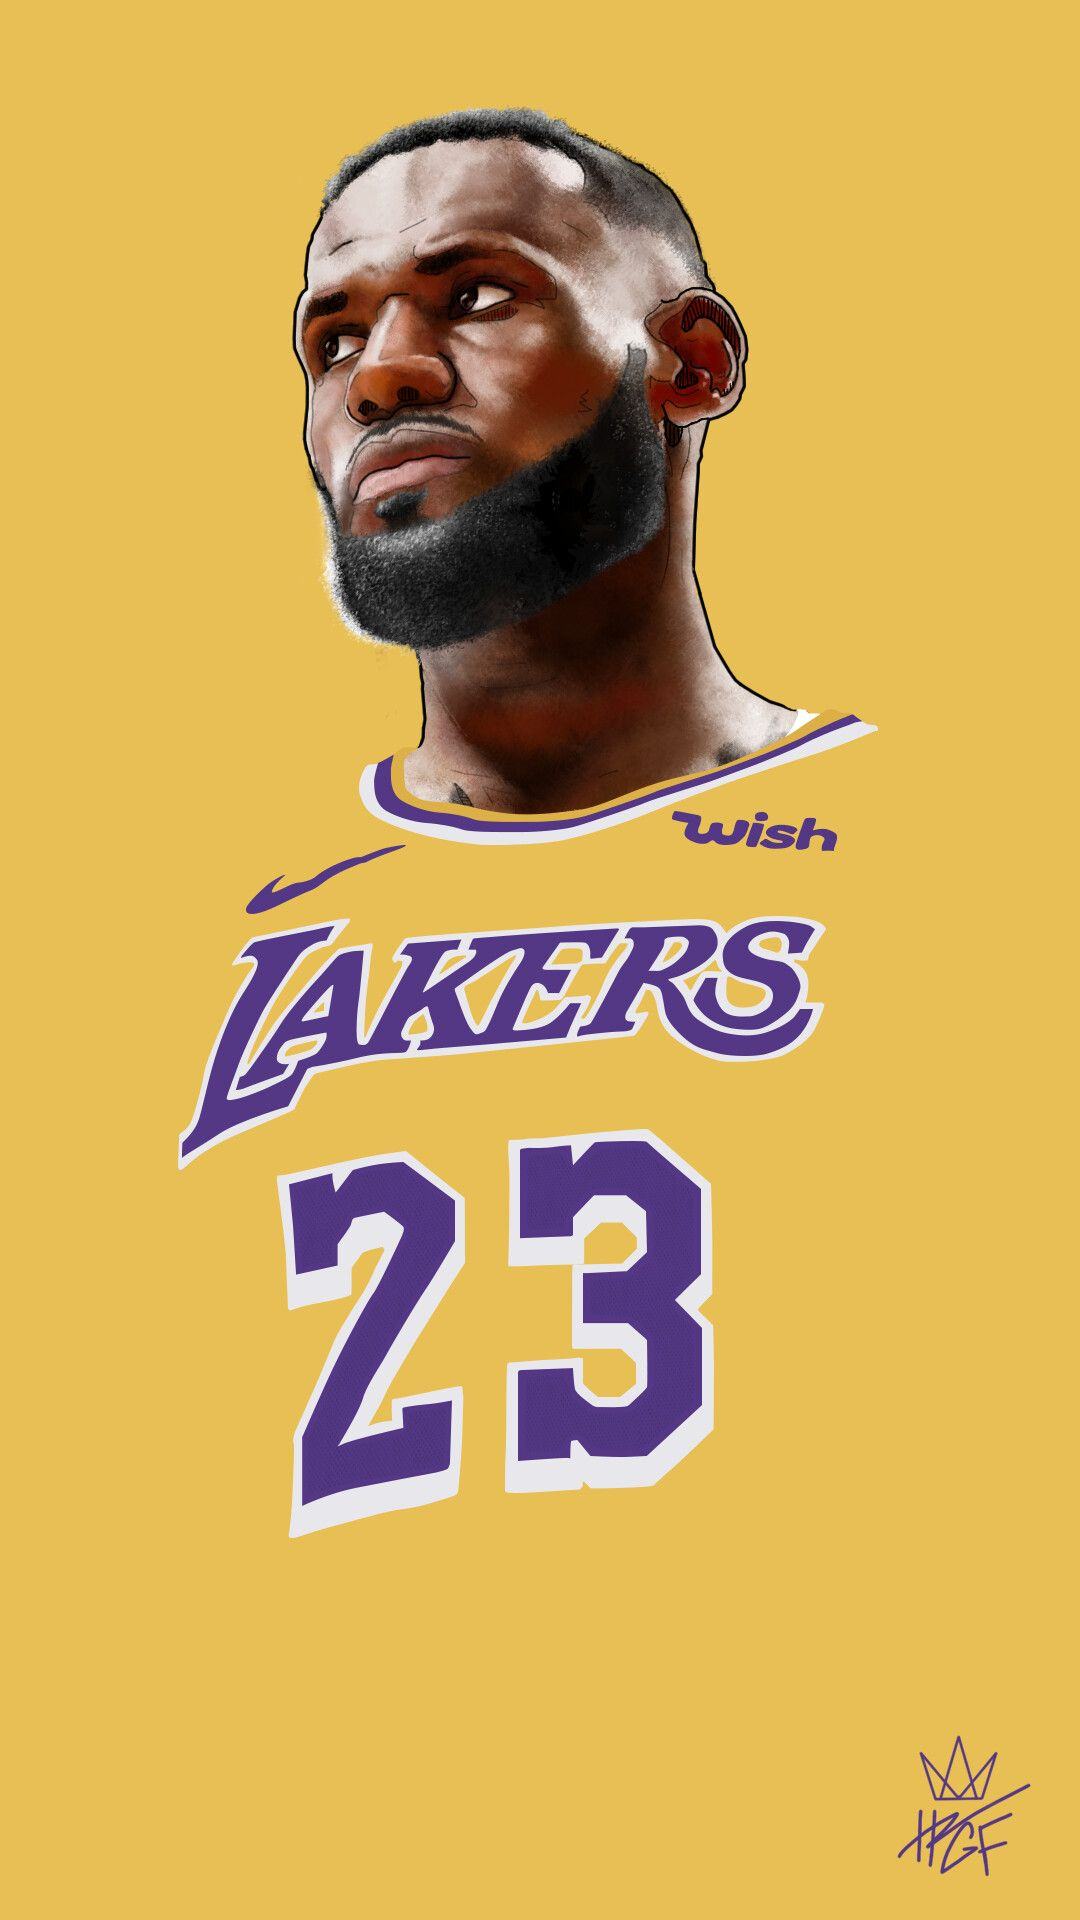 Lebron James Iphone Background In 2020 Lebron James Wallpapers